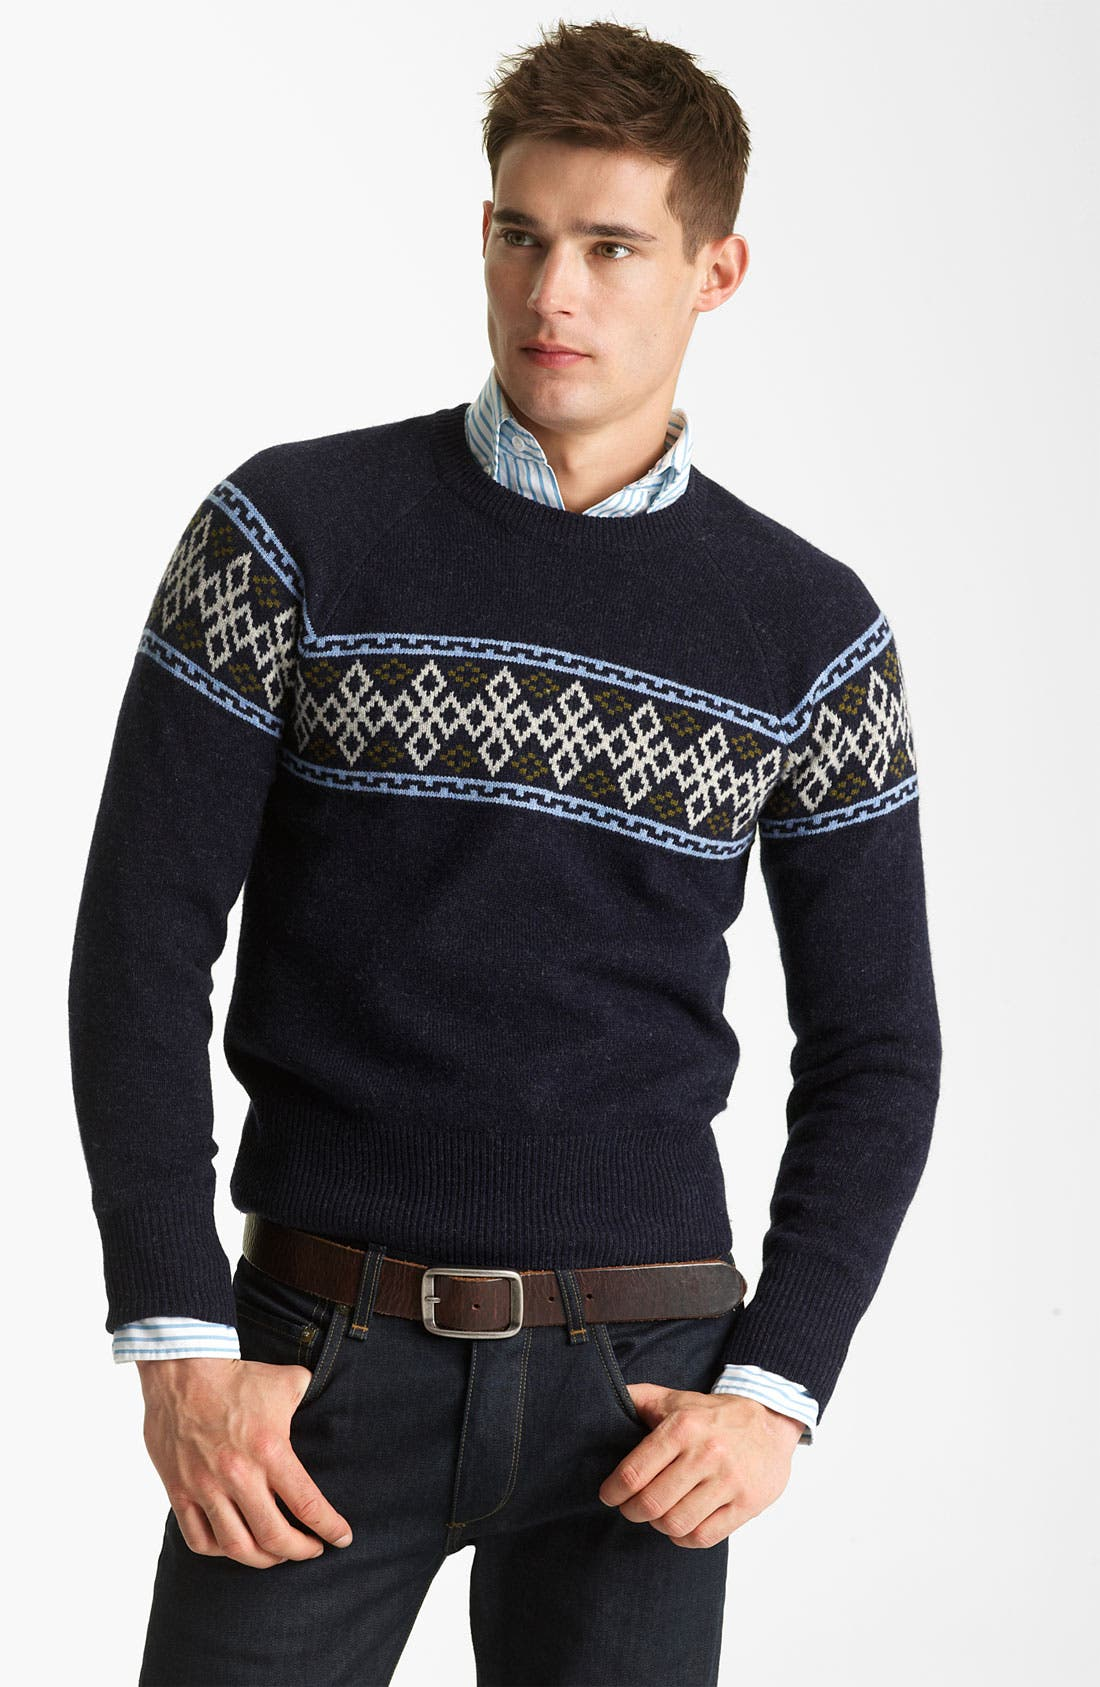 Main Image - Gant by Michael Bastian Wool Crewneck Sweater